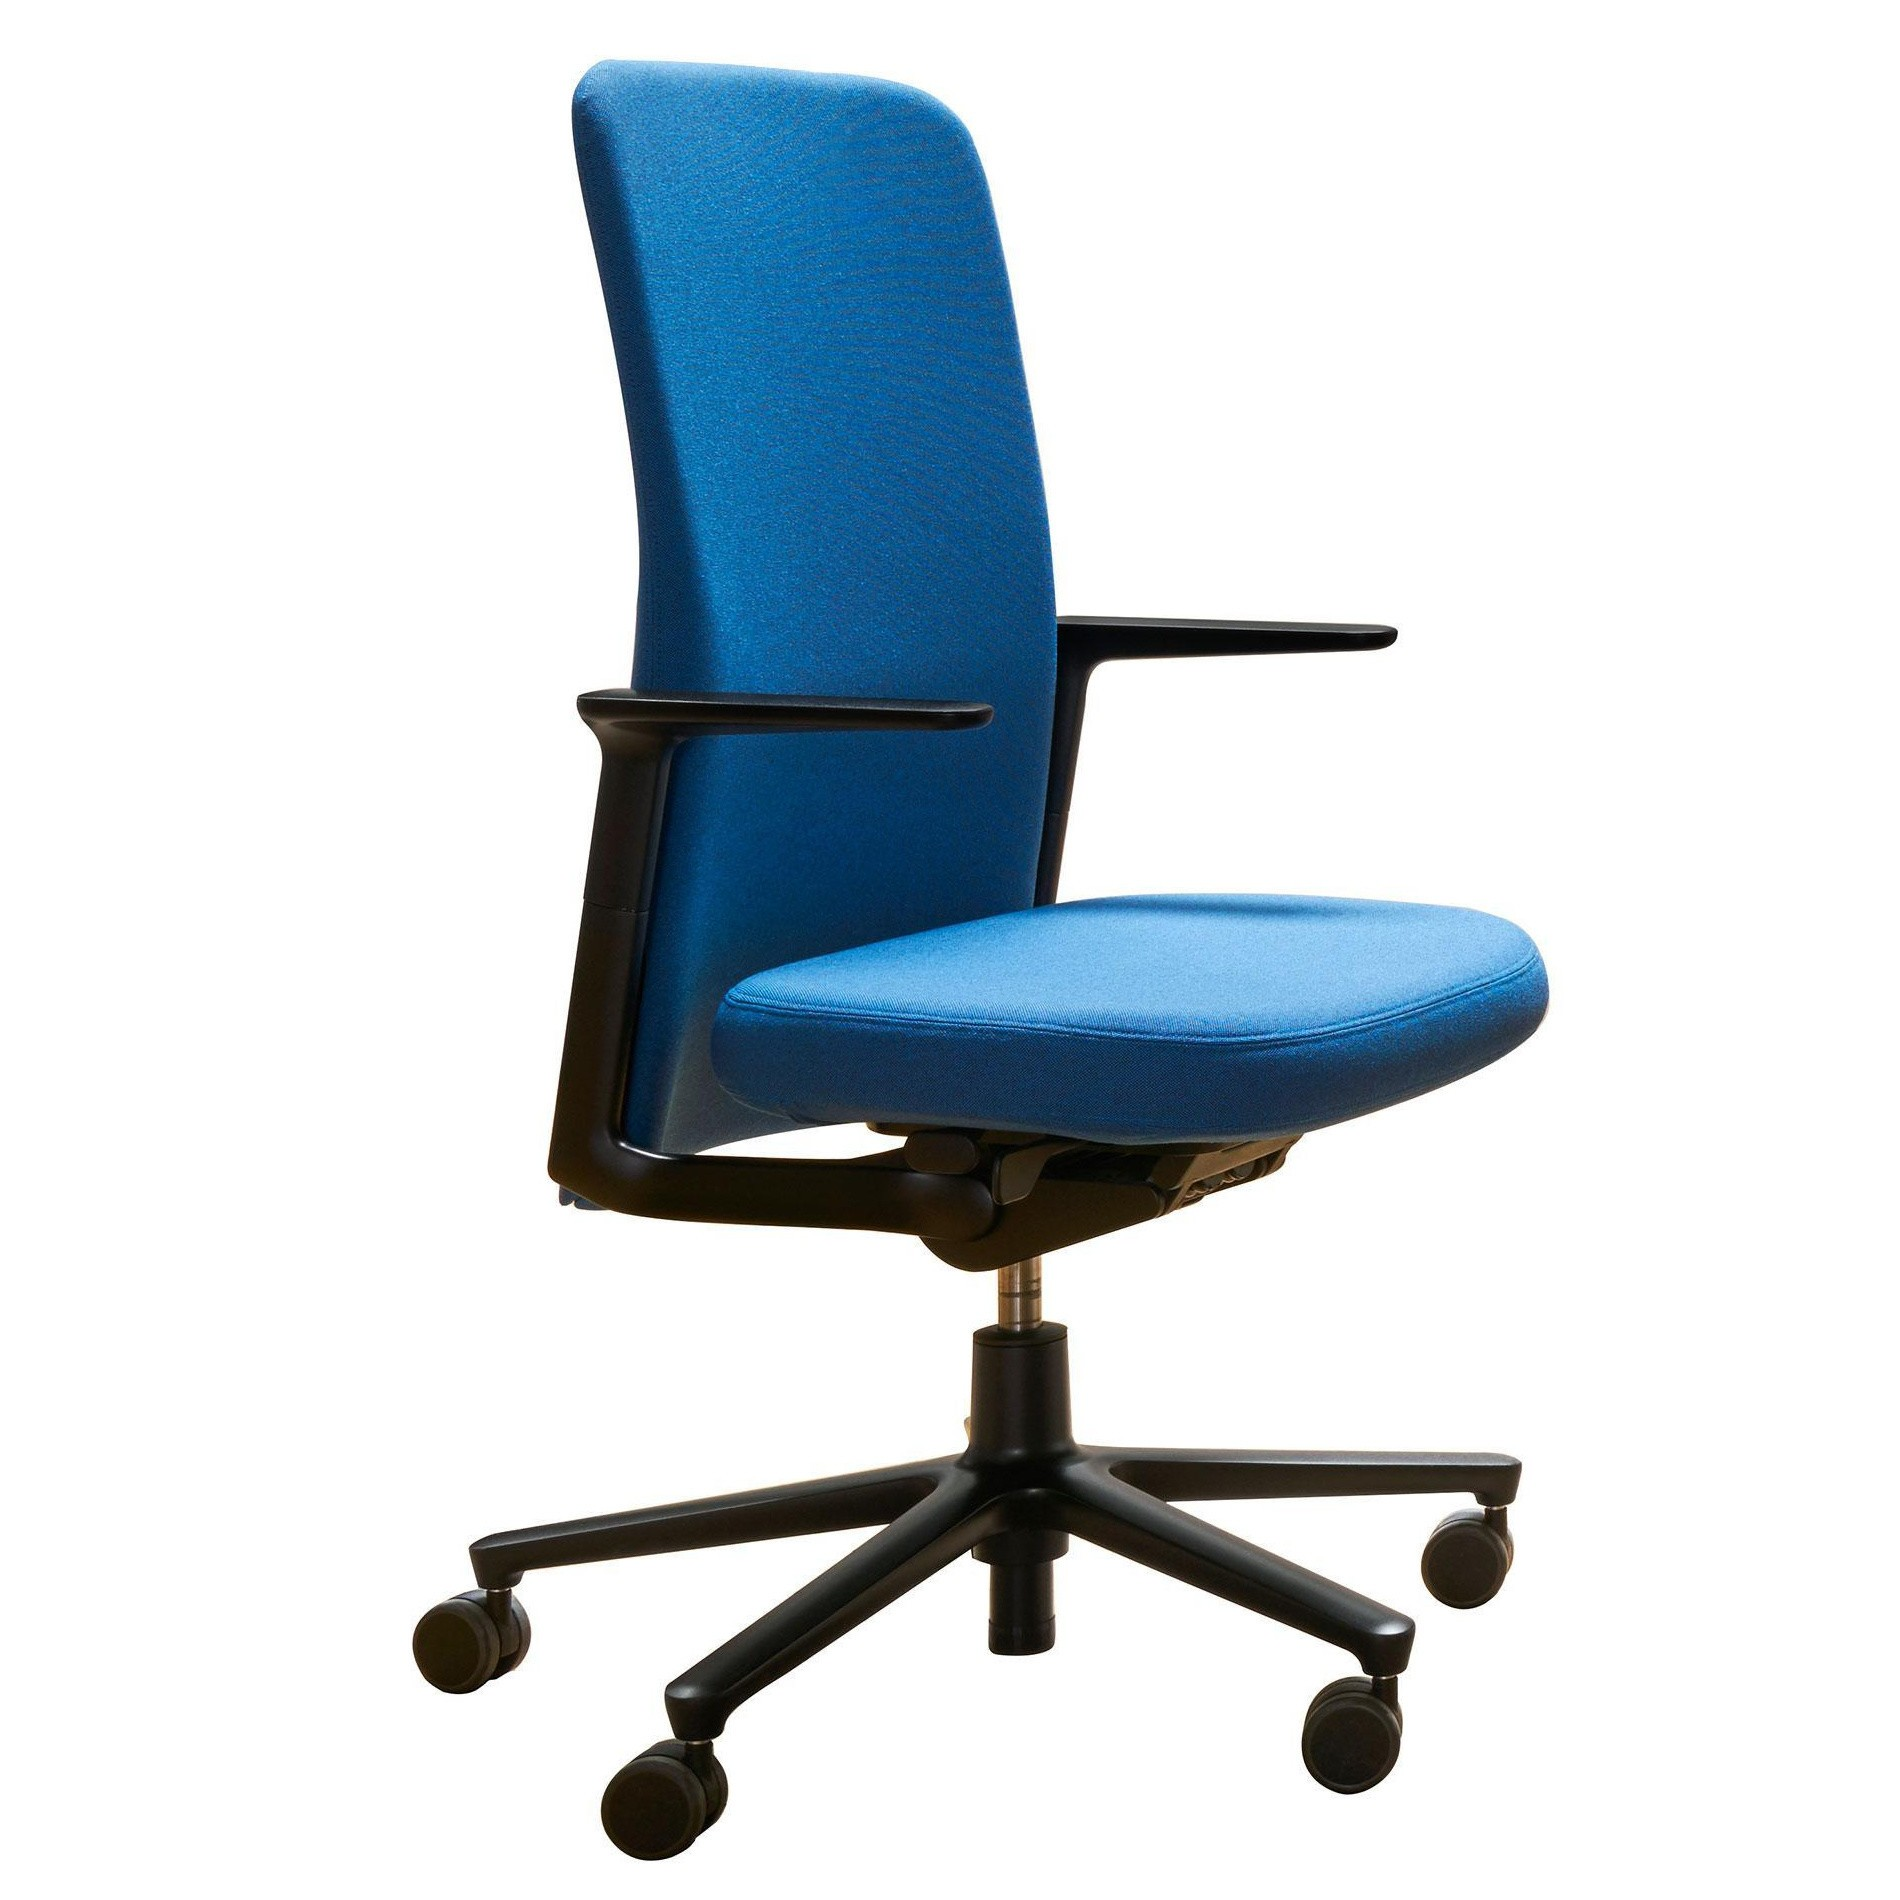 Chair Price Pacific Chair Medium High Backrest